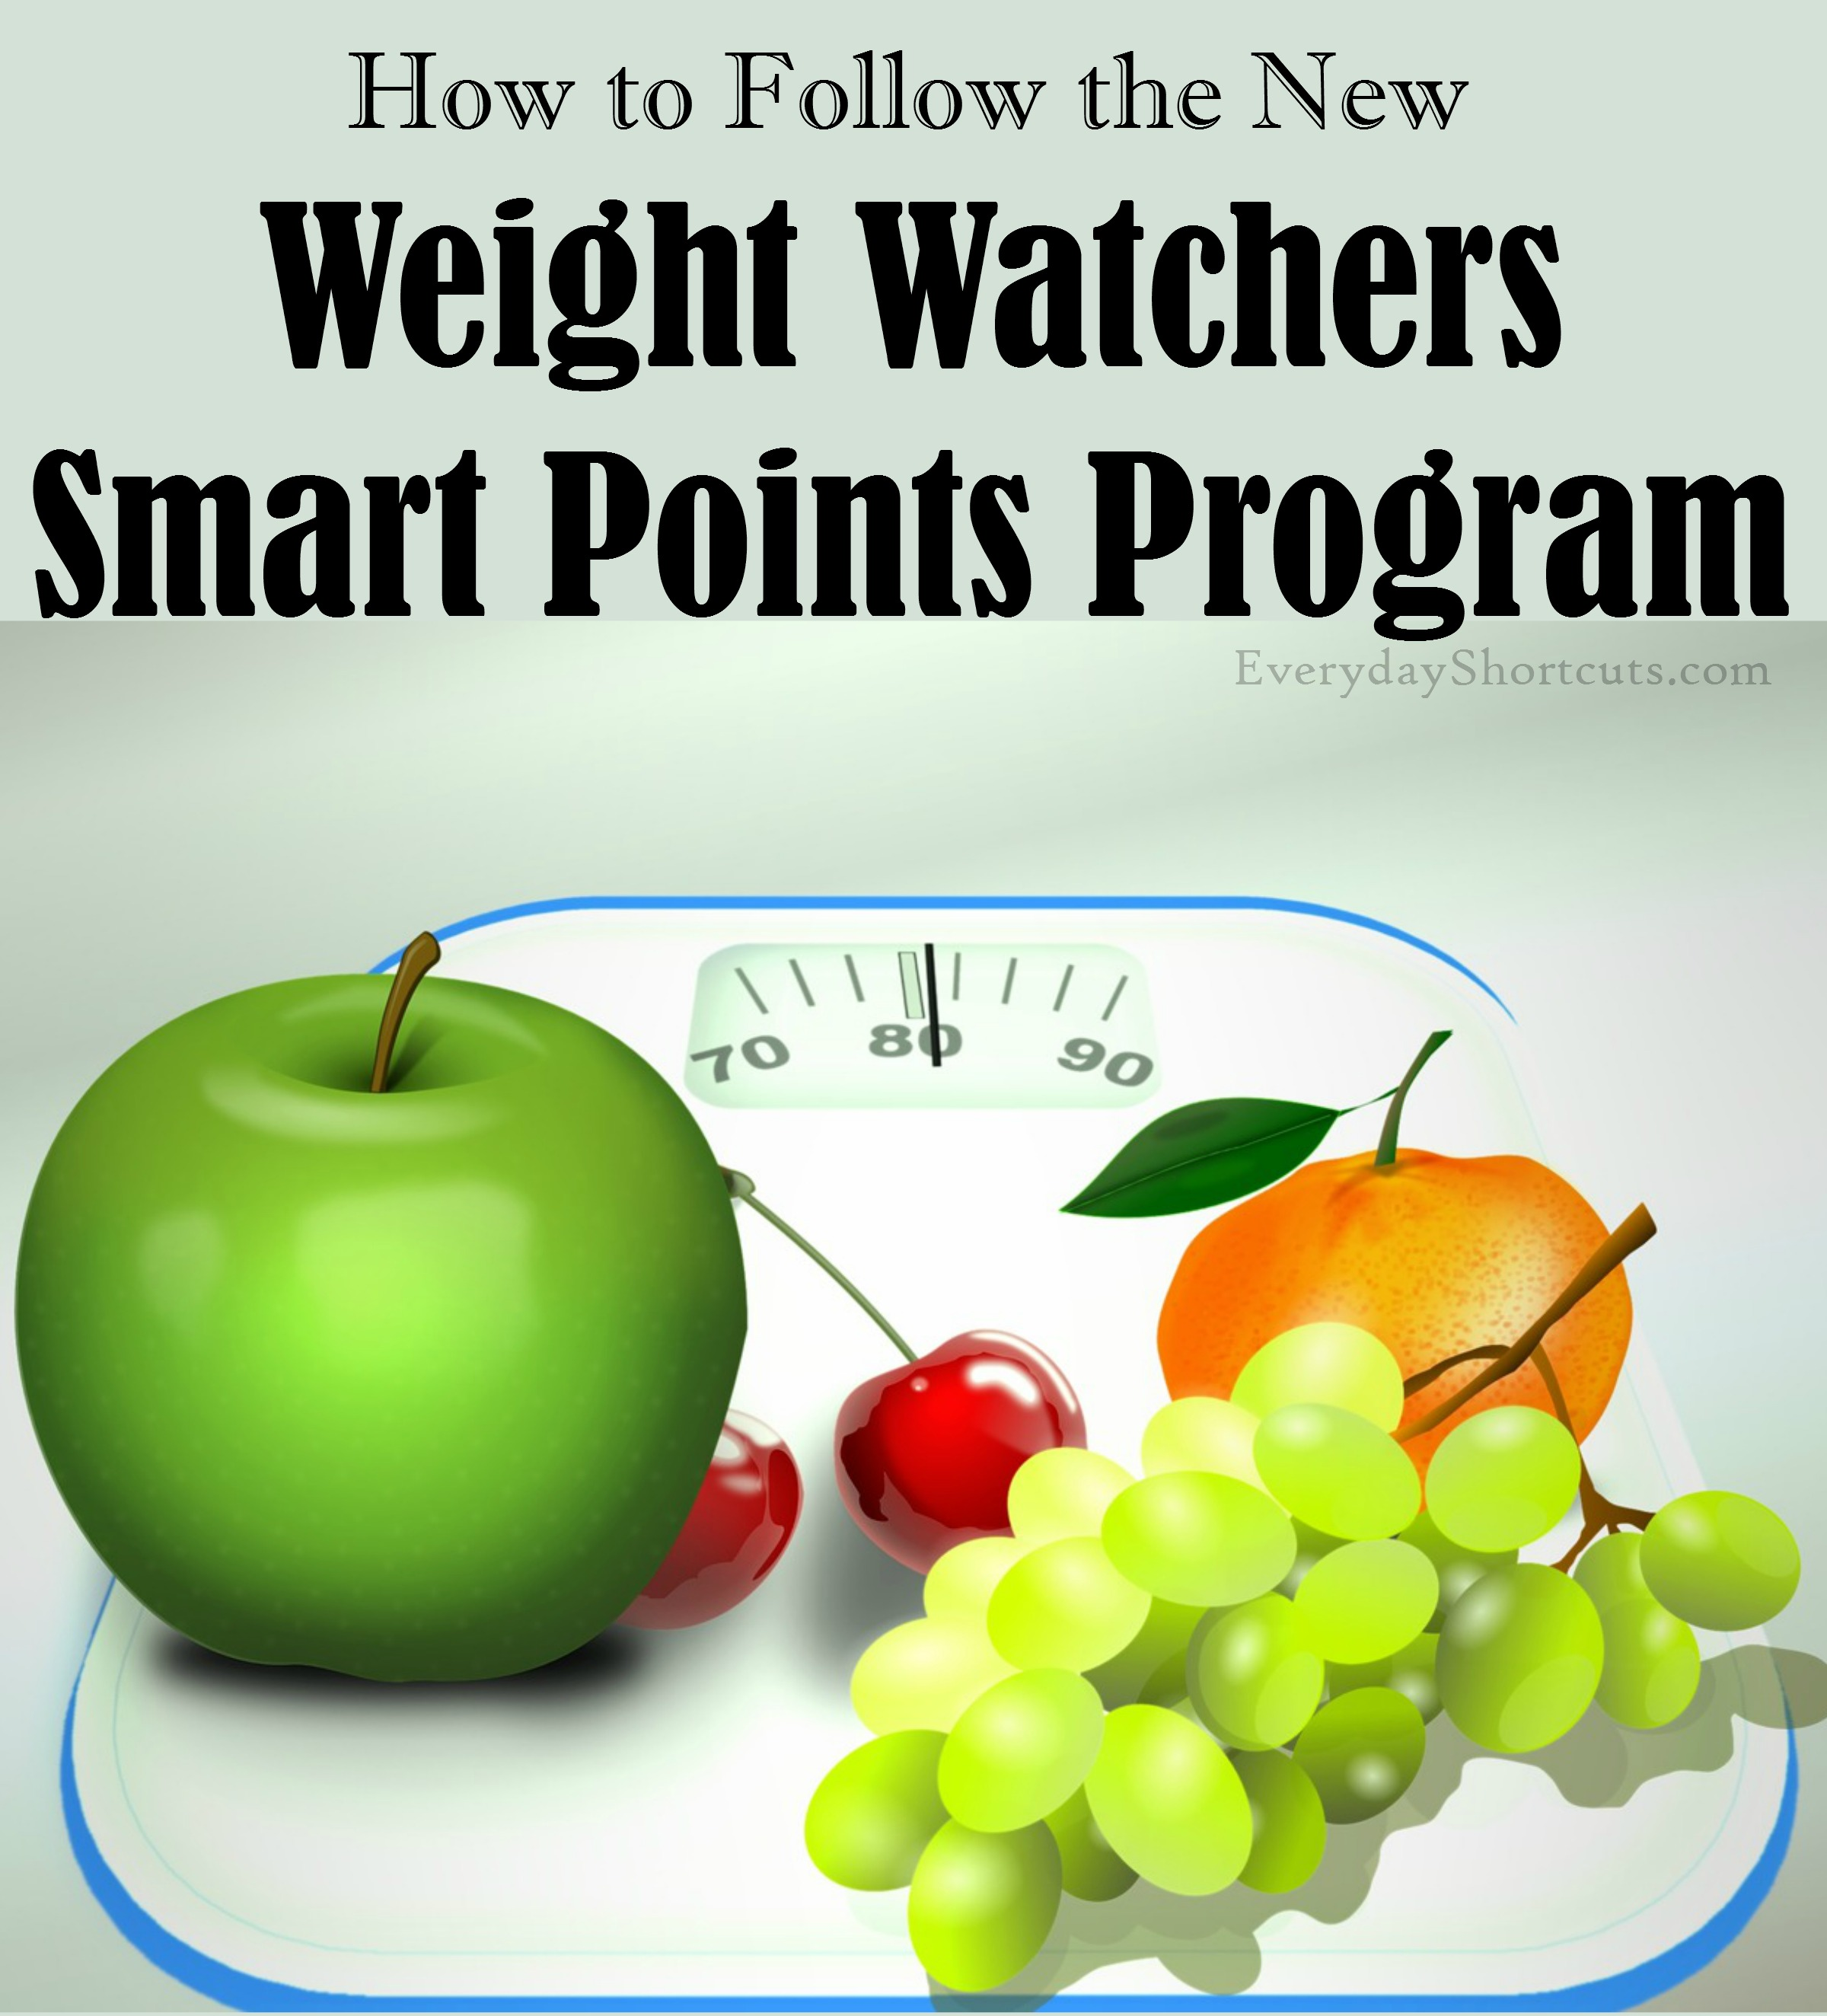 How to Follow Weight Watchers Smart Points Program